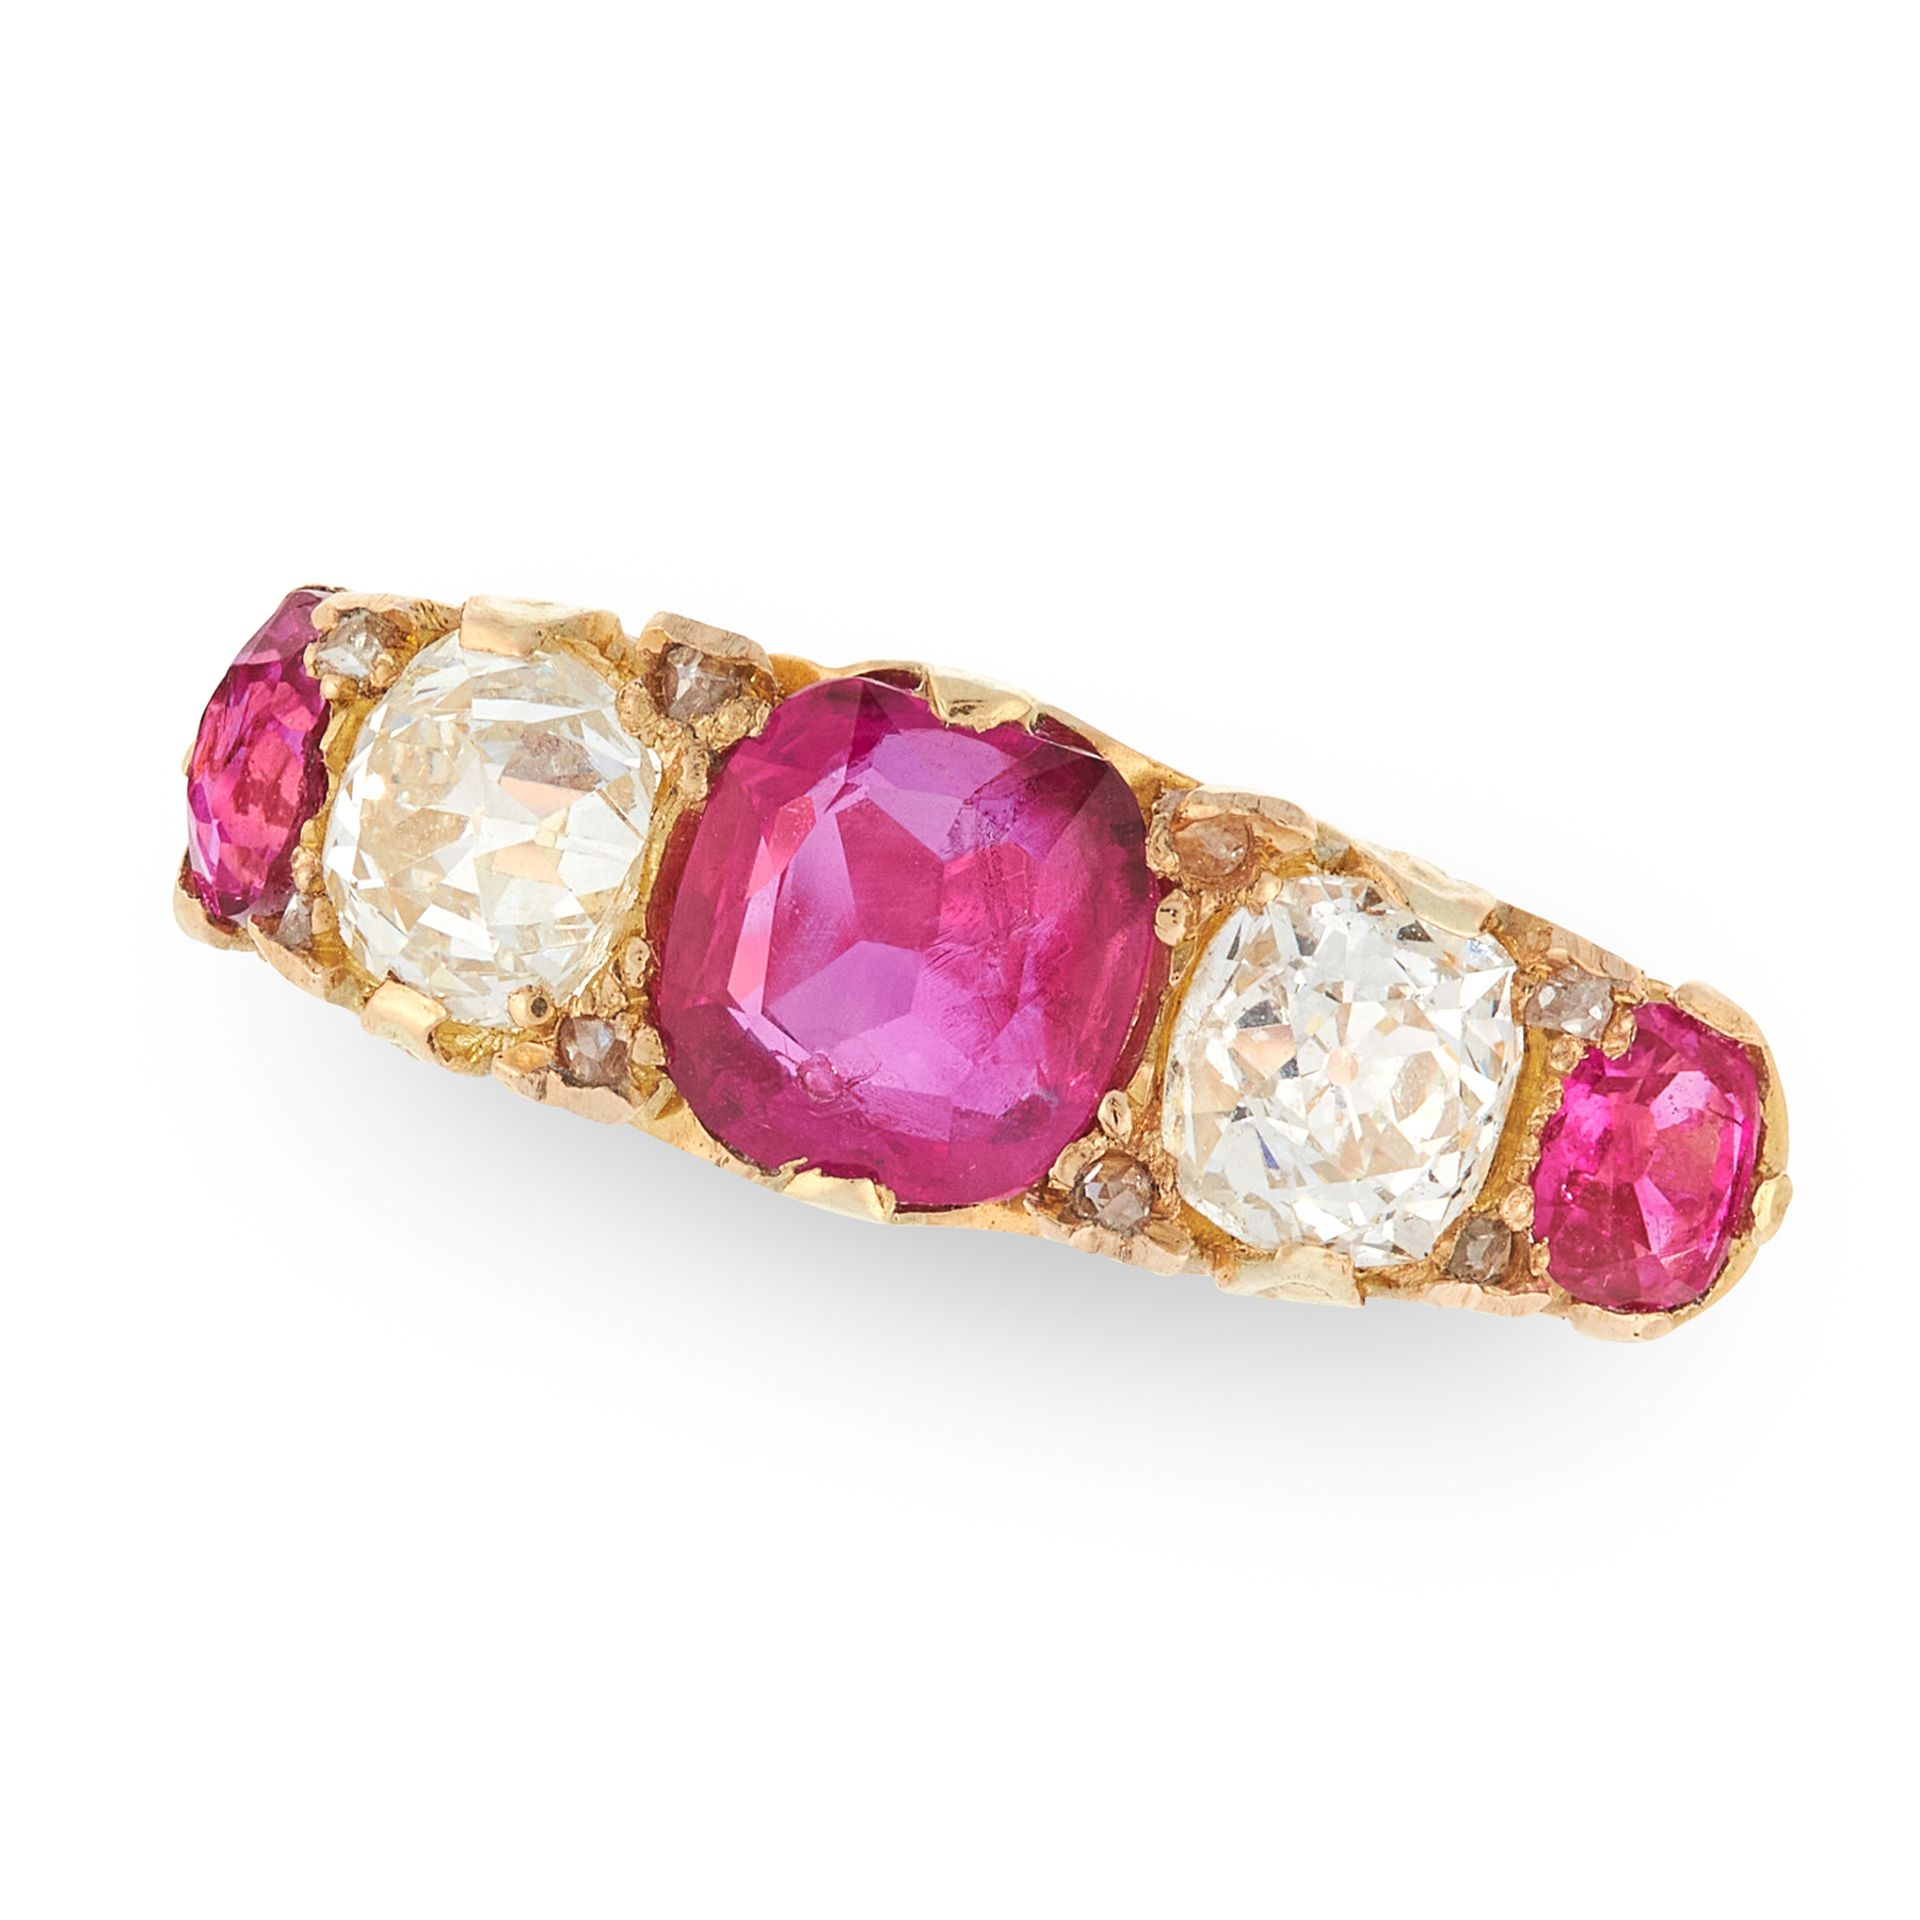 AN ANTIQUE VICTORIAN BURMA NO HEAT RUBY AND DIAMOND FIVE STONE RING, 1886 in 18ct yellow gold, set